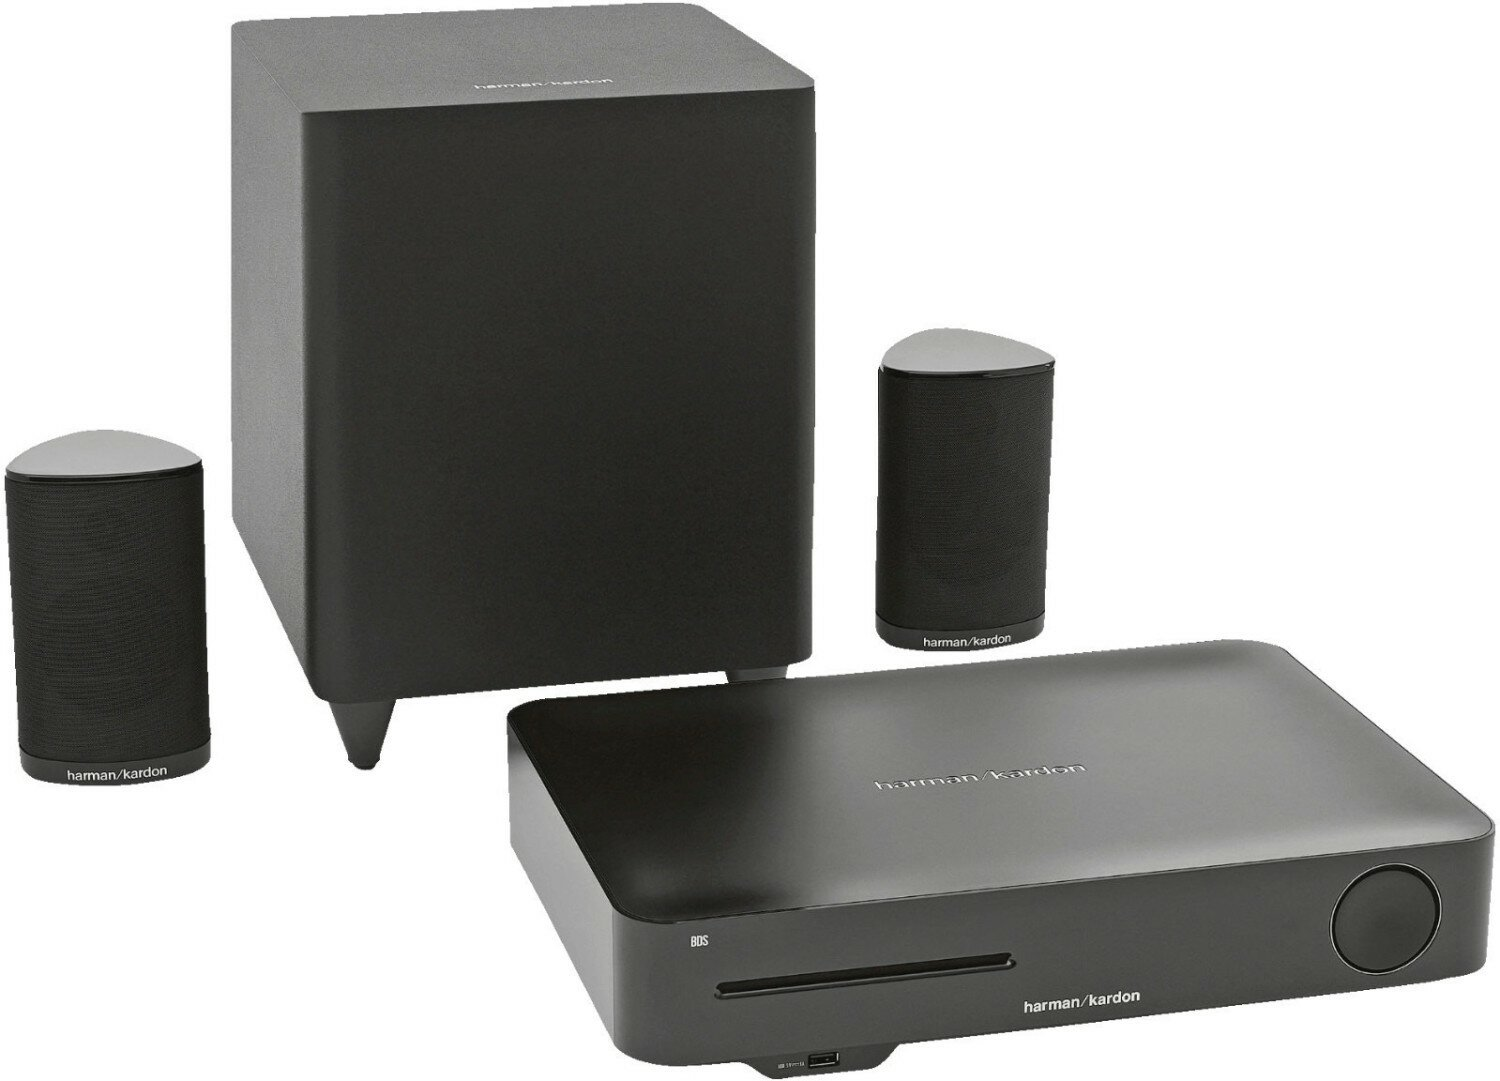 Harman/Kardon BDS 335